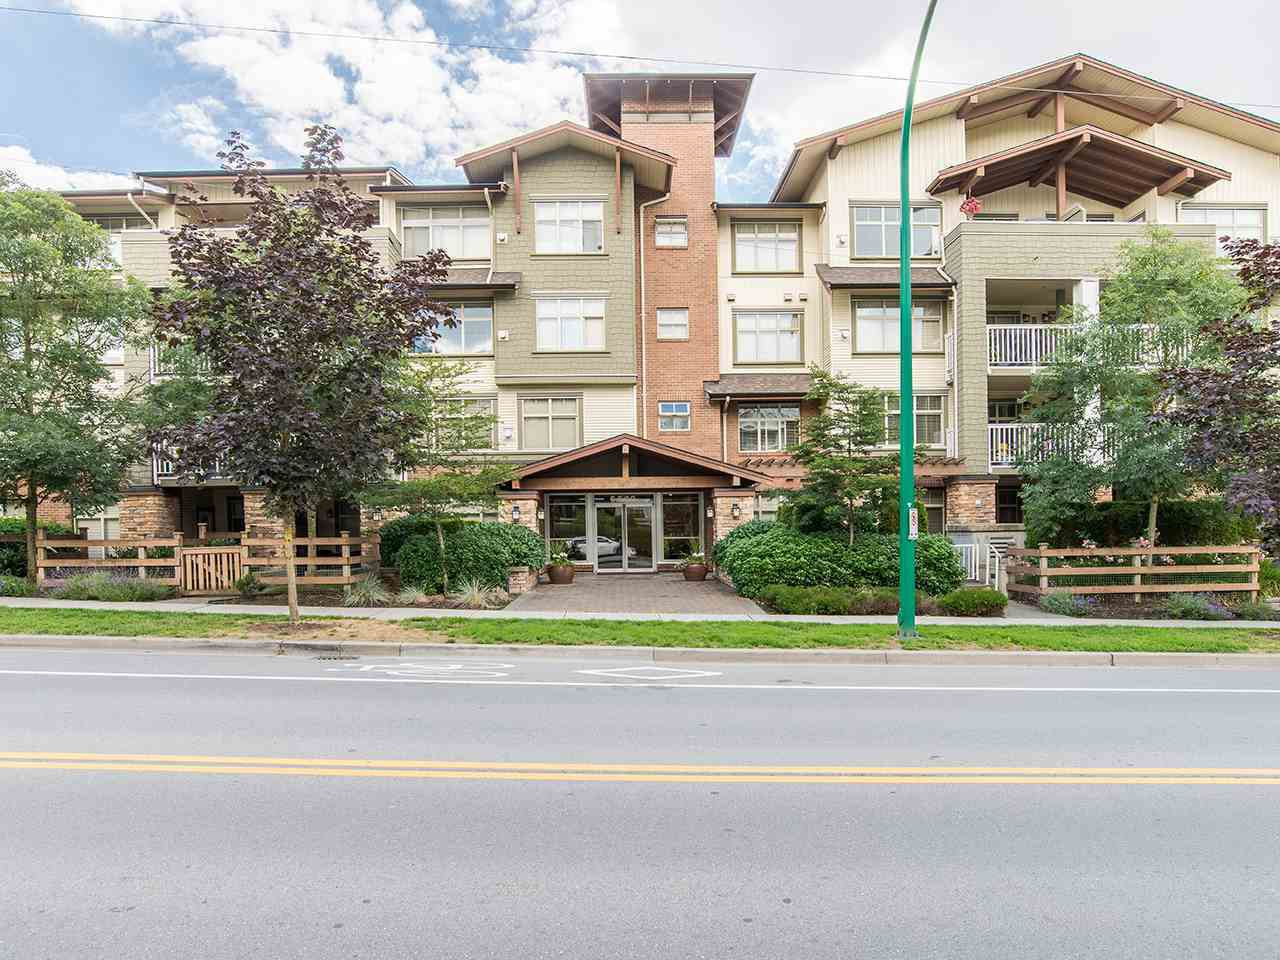 """Main Photo: 204 6500 194 Street in Surrey: Clayton Condo for sale in """"SUNSET GROVE"""" (Cloverdale)  : MLS®# R2190665"""